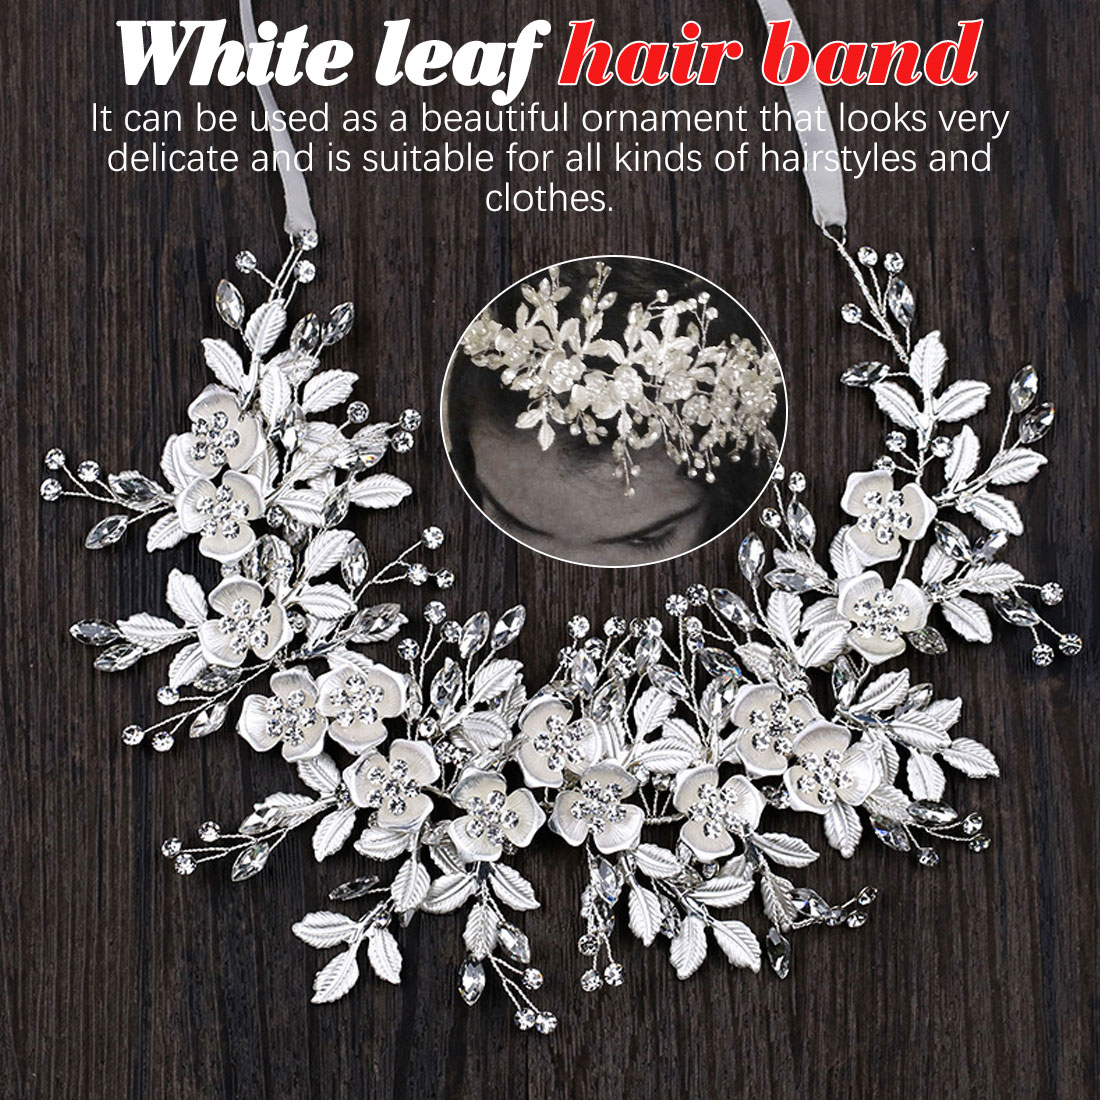 Leaf Hair Band White Crystal Headband Wedding Accessories Tiara Ornaments in Women 39 s Hair Accessories from Apparel Accessories